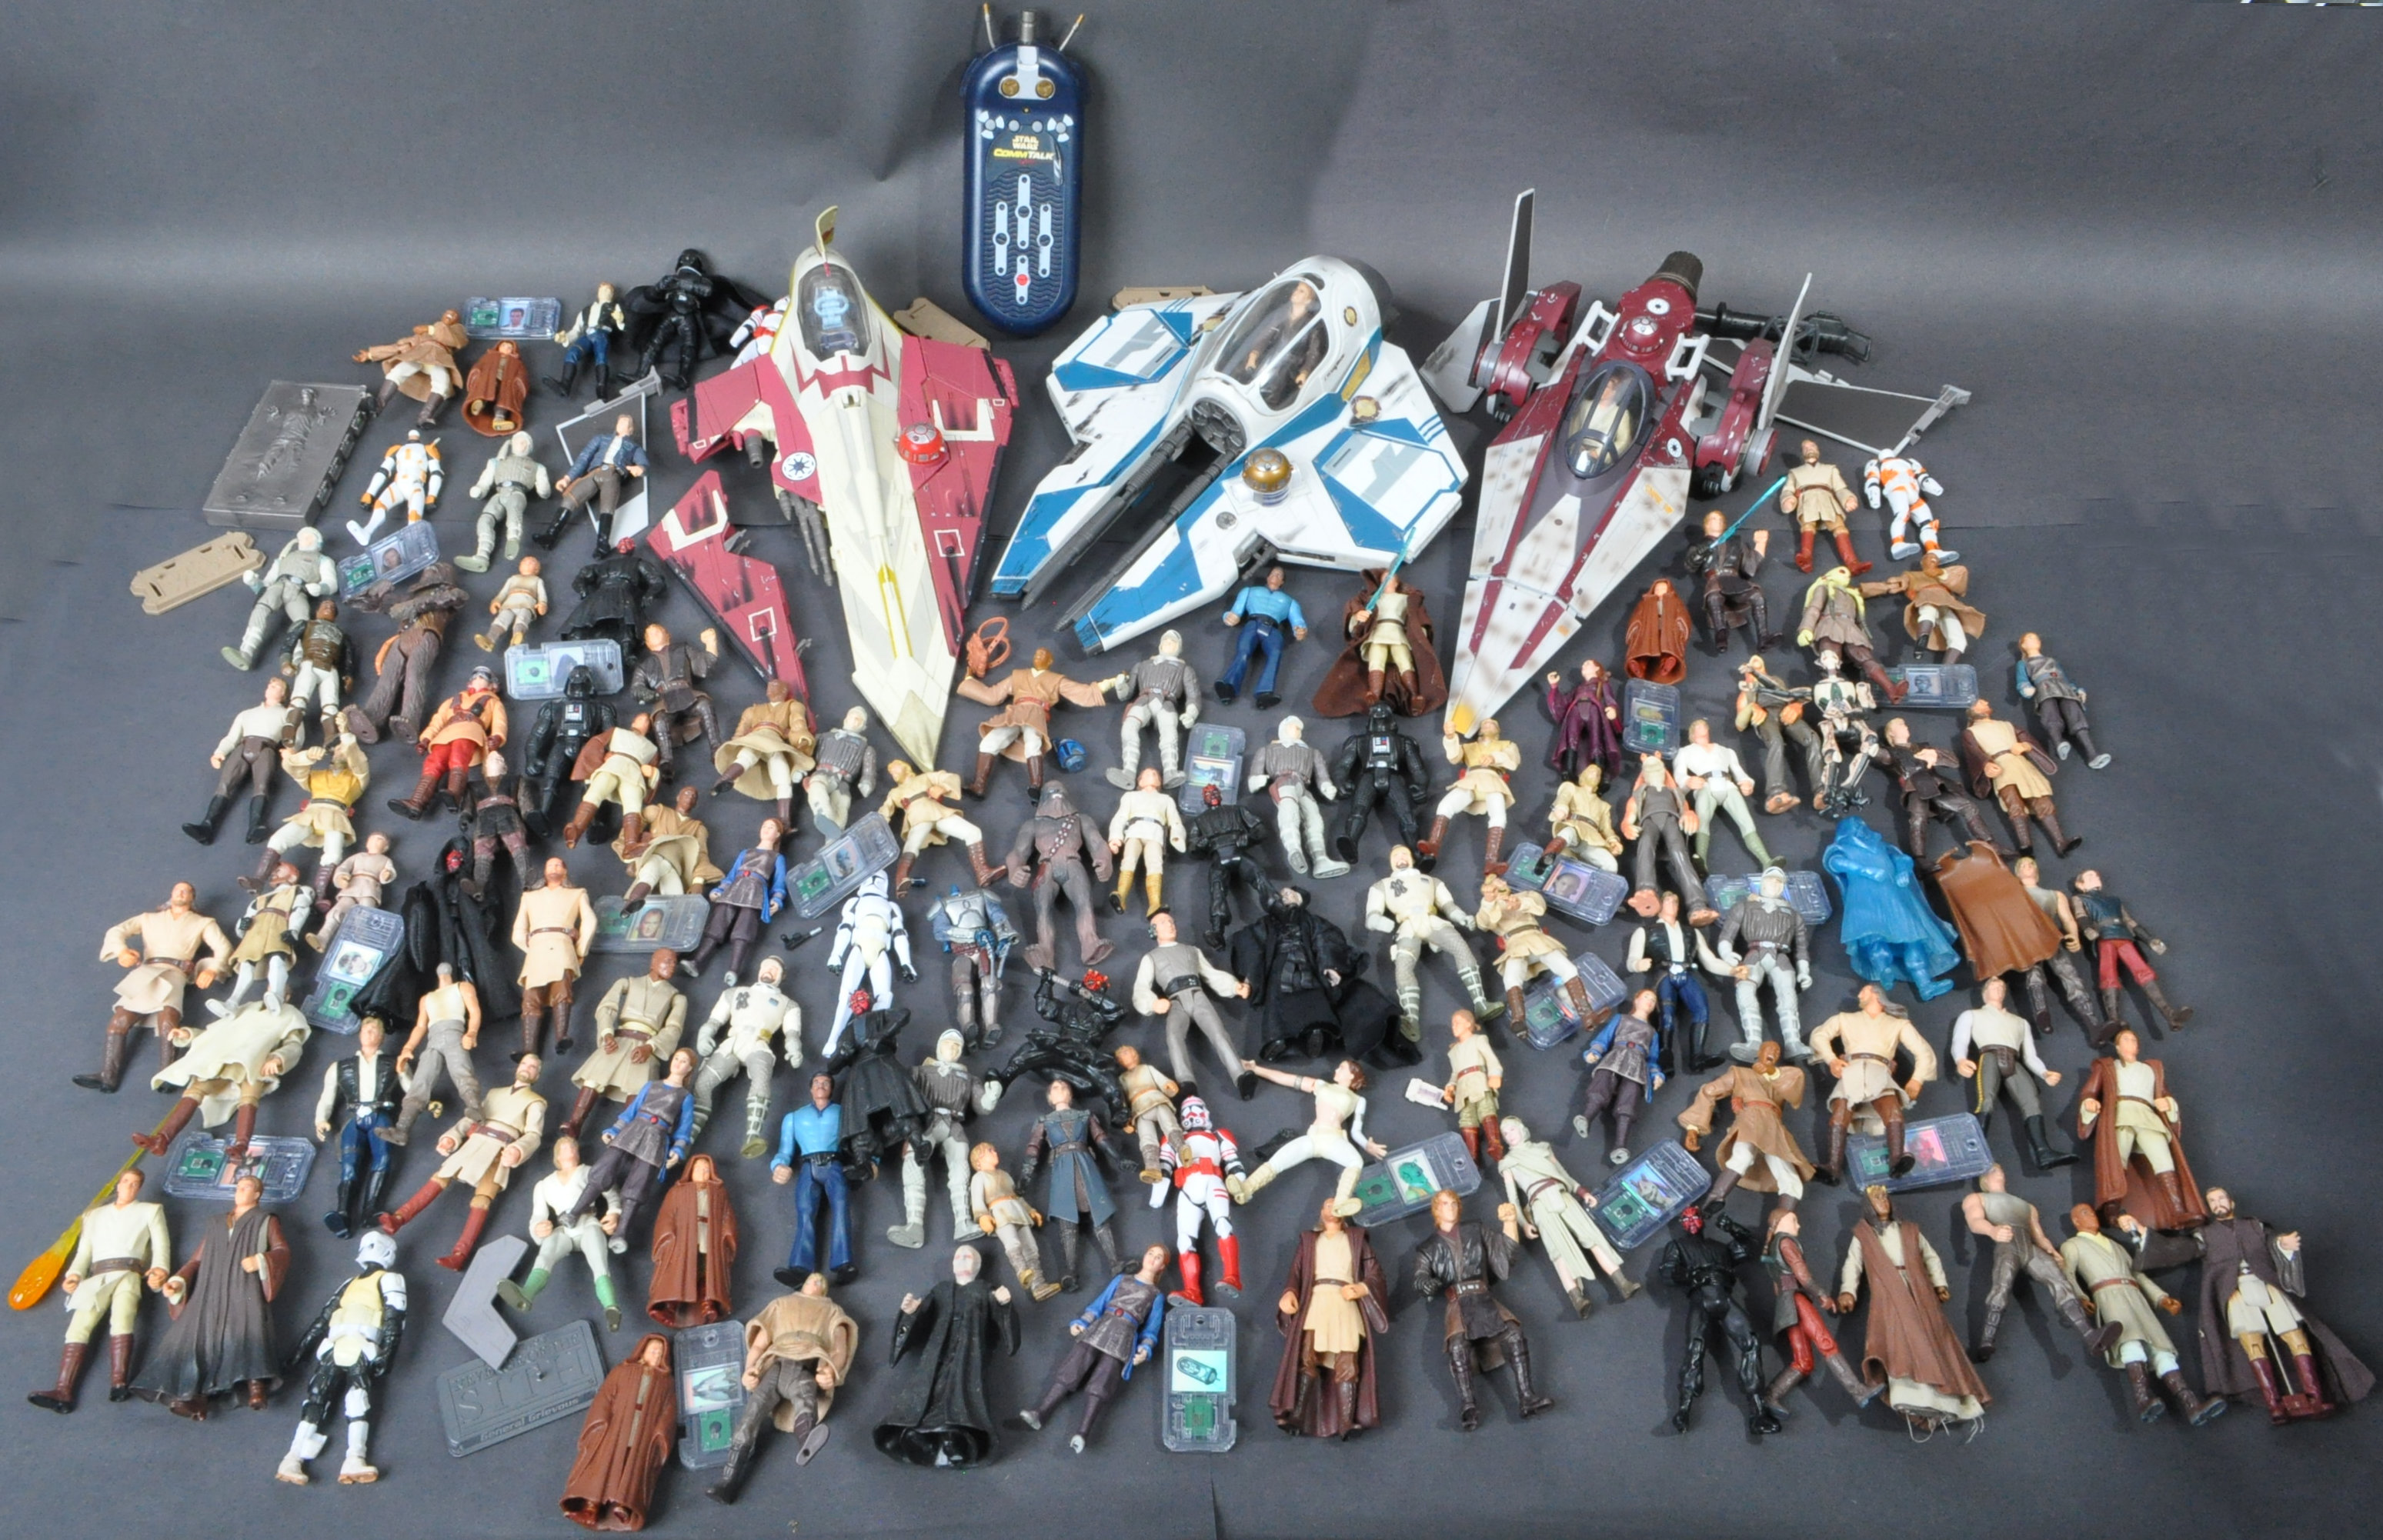 STAR WARS - LARGE COLLECTION KENNER / HASBRO CLONE WARS & OTHER FIGURES